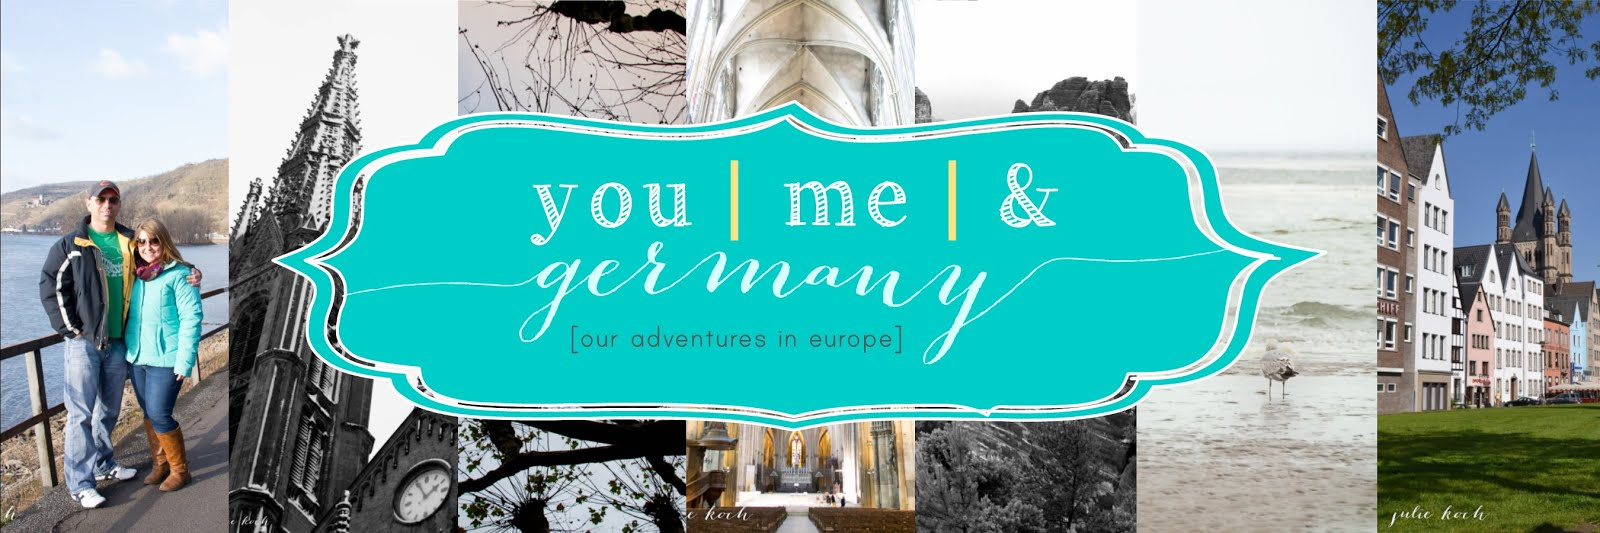 You, Me, and Germany